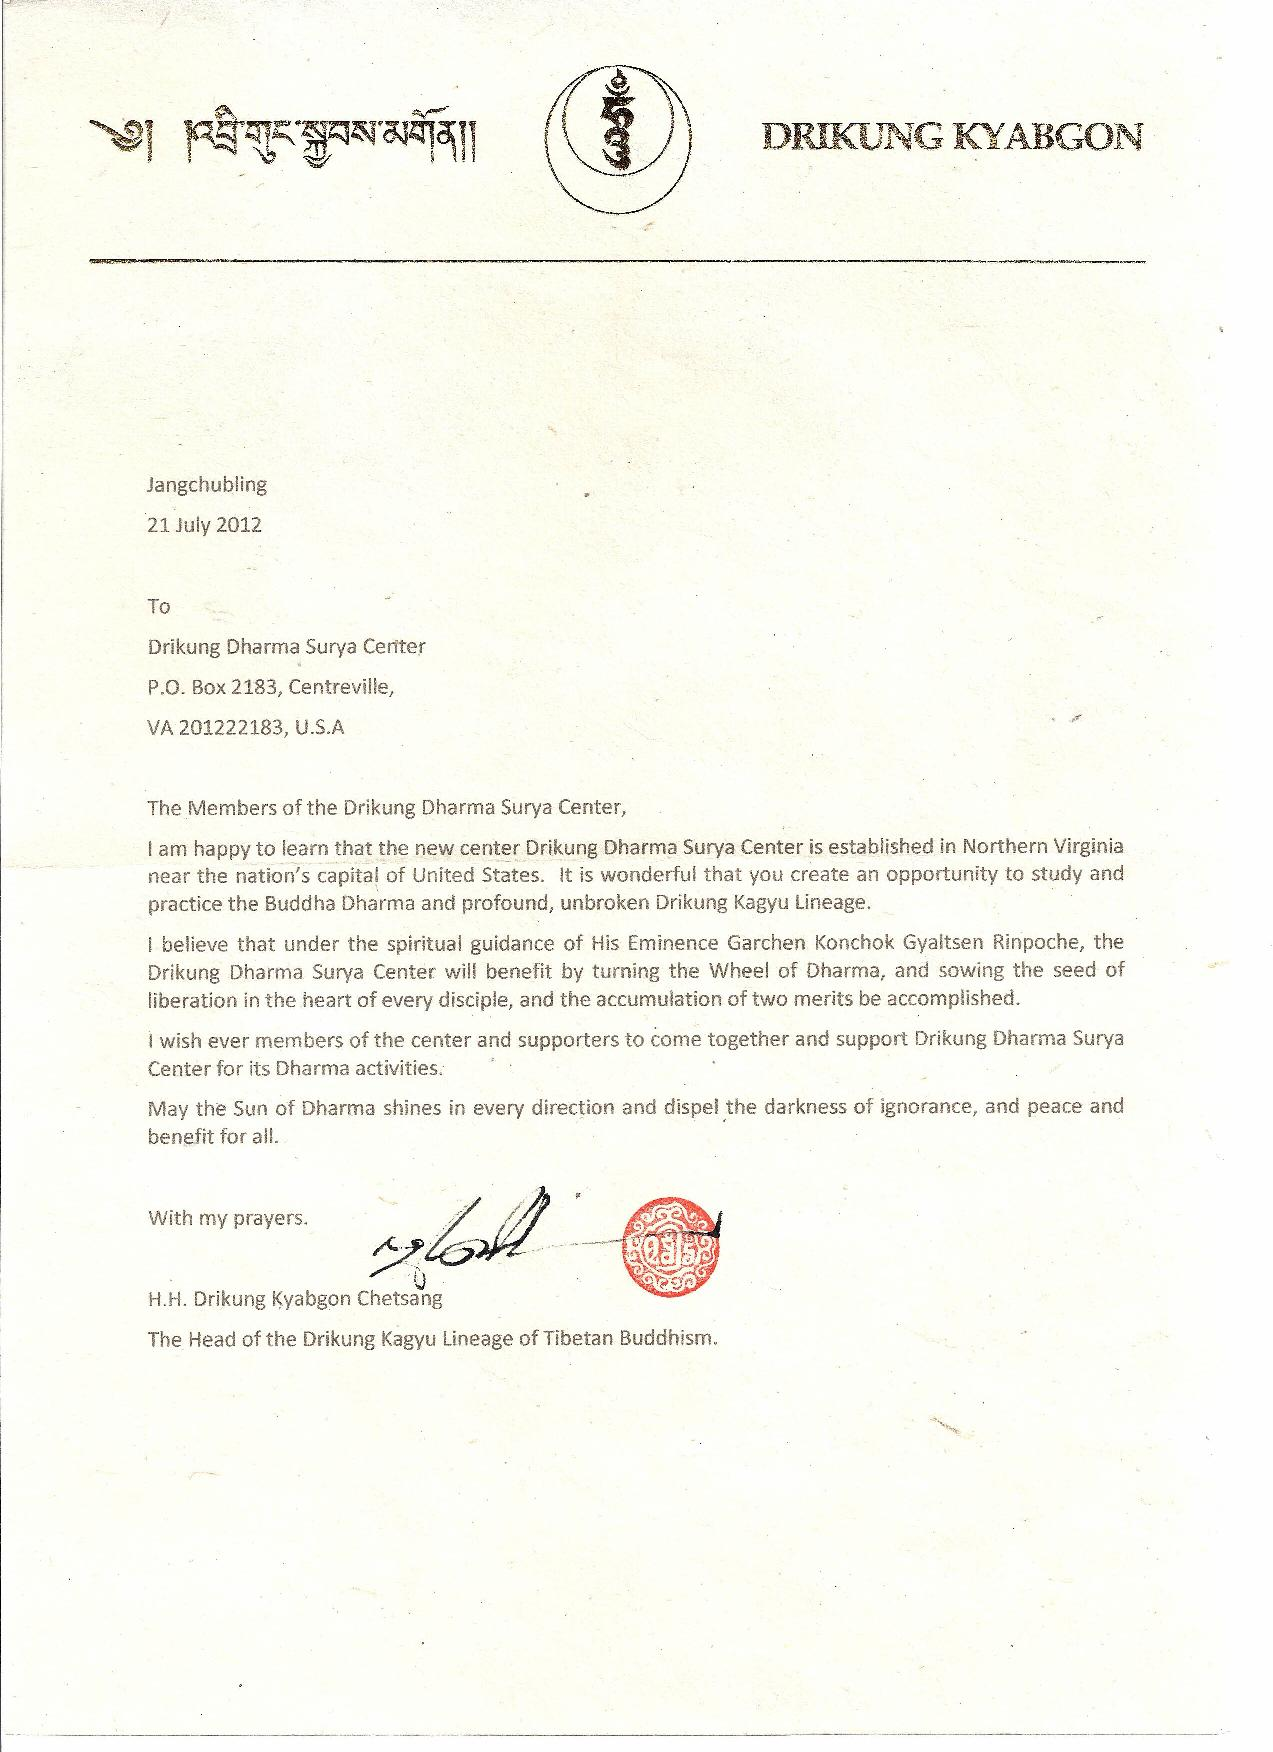 center endorsement drikung dharma surya center endorsement letter from his holiness drikung kyabgon chetsang rinpoche page 001